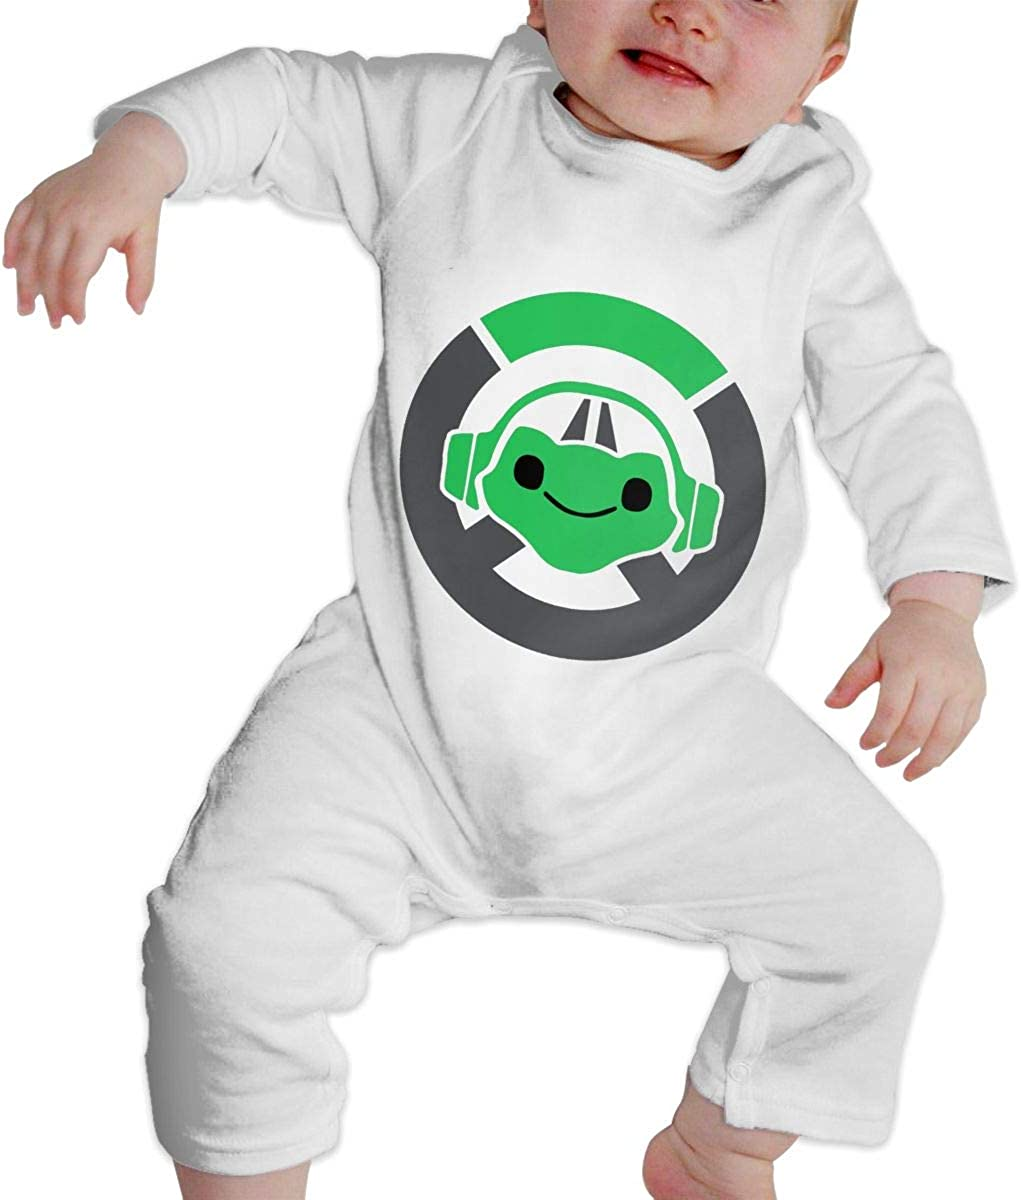 Unisex Cotton Creeper Outfit for 0-24 Months Lucio Overwatch Video Game Long Sleeve Pajamas Bodysuit Onesie